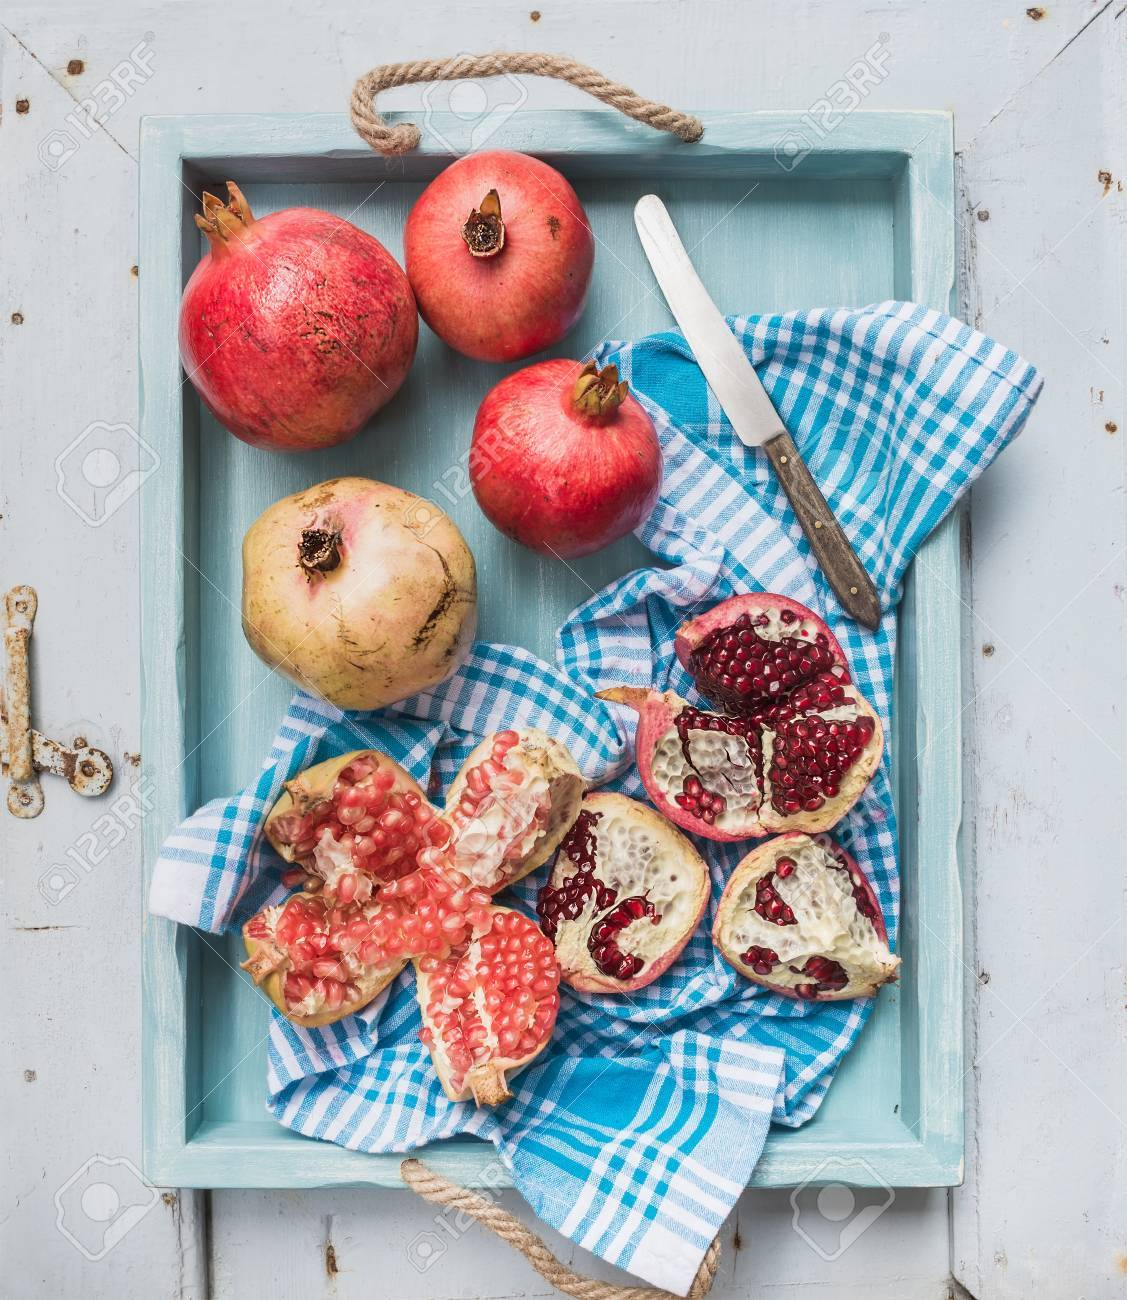 ... Red And Teal Kitchen By Red And White Pomegranates And Knife On Kitchen  Towel In Blue ...